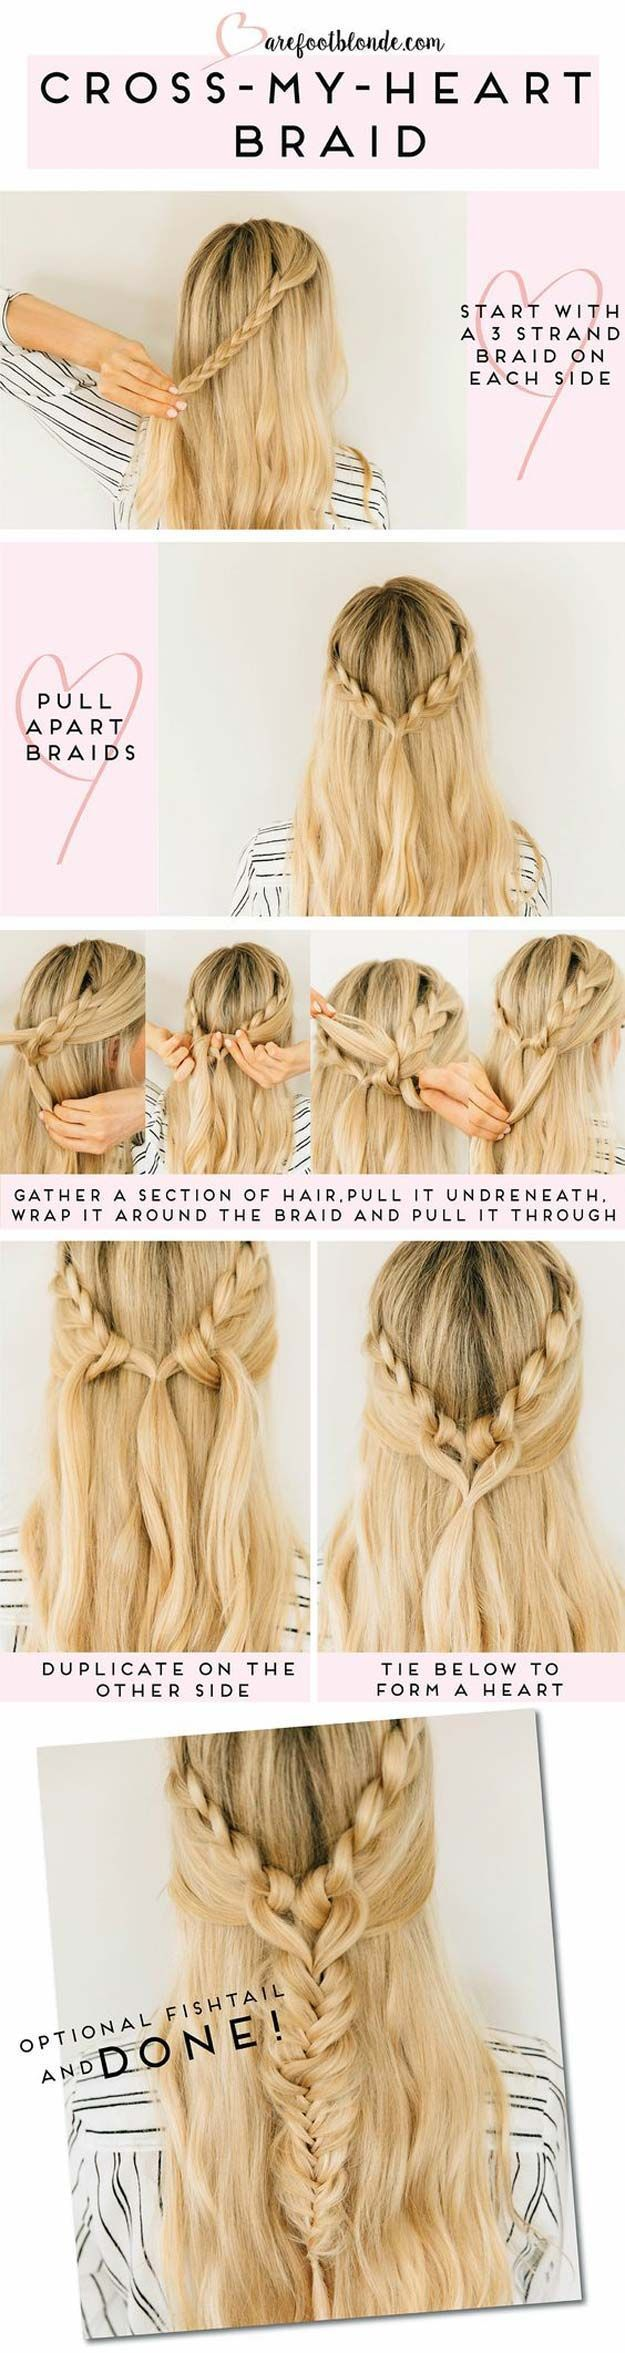 Best Hair Braiding Tutorials - Cross My Heart Braid - Easy Step by Step Tutorials for Braids - How To Braid Fishtail, French Braids, Flower Crown, Side Braids, Cornrows, Updos - Cool Braided Hairstyles for Girls, Teens and Women - School, Day and Evening,